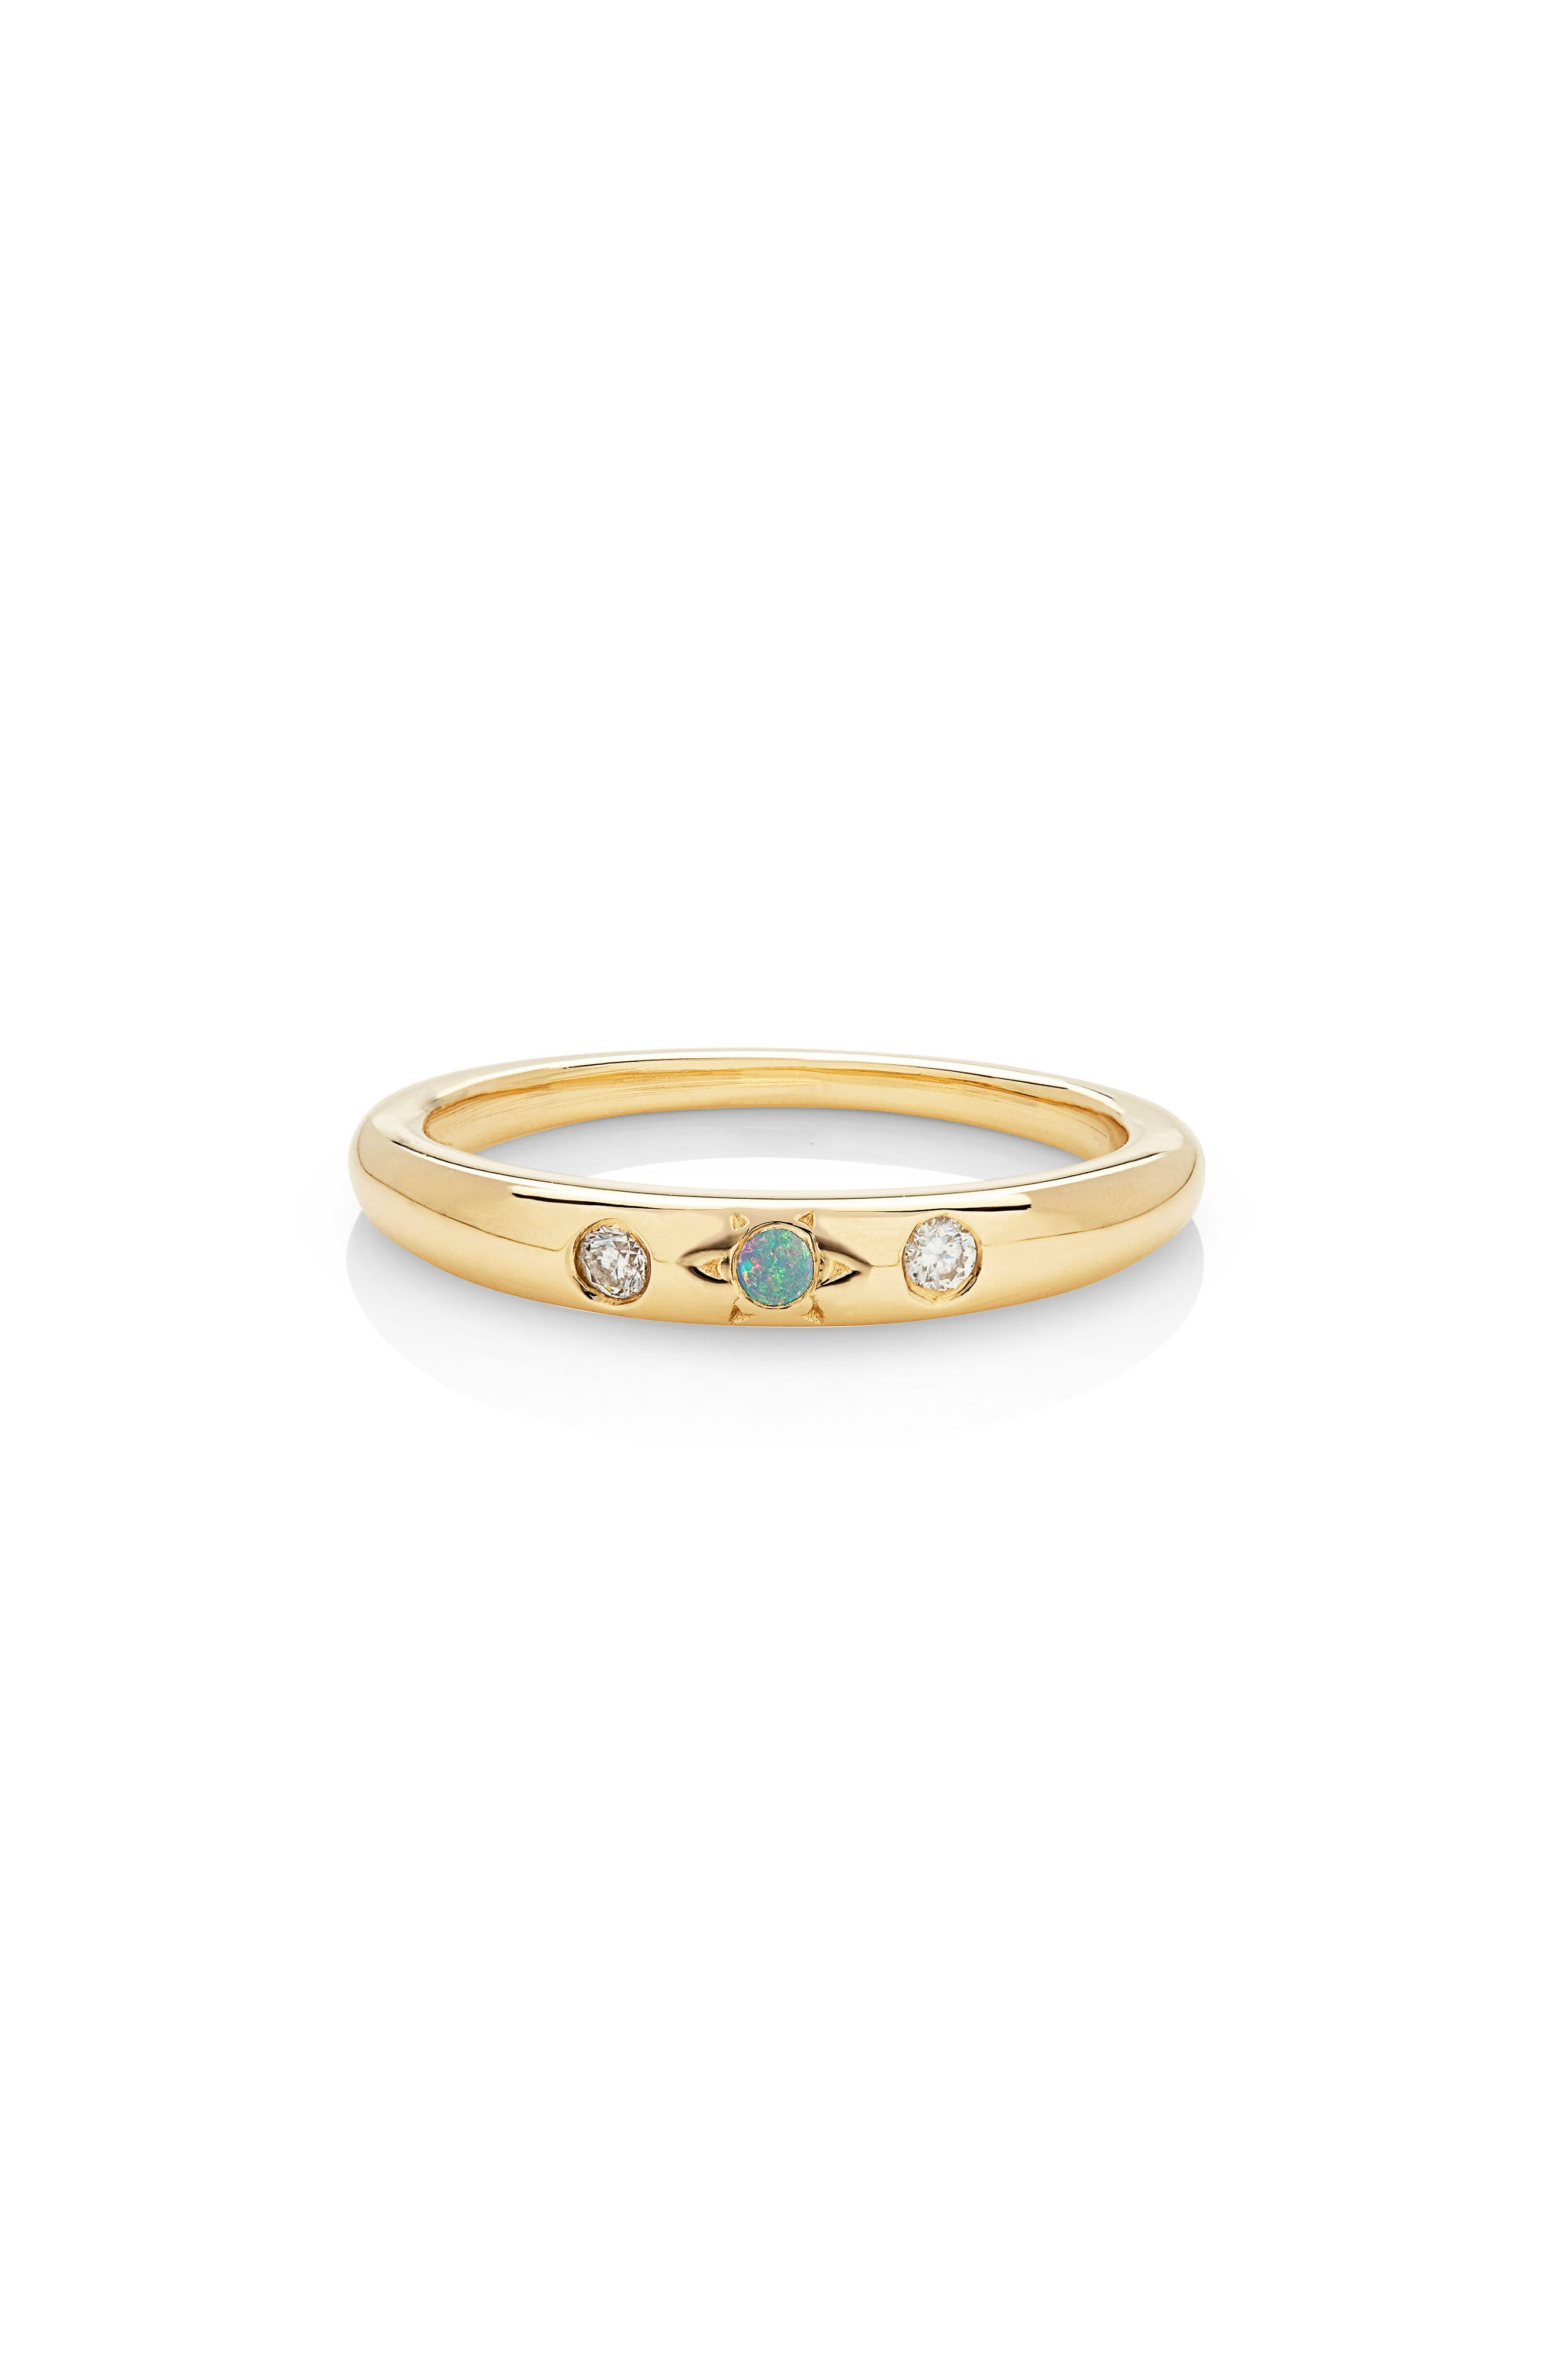 Mystic Diamond Band,                         Main,                         color, Yellow Gold/ Opal